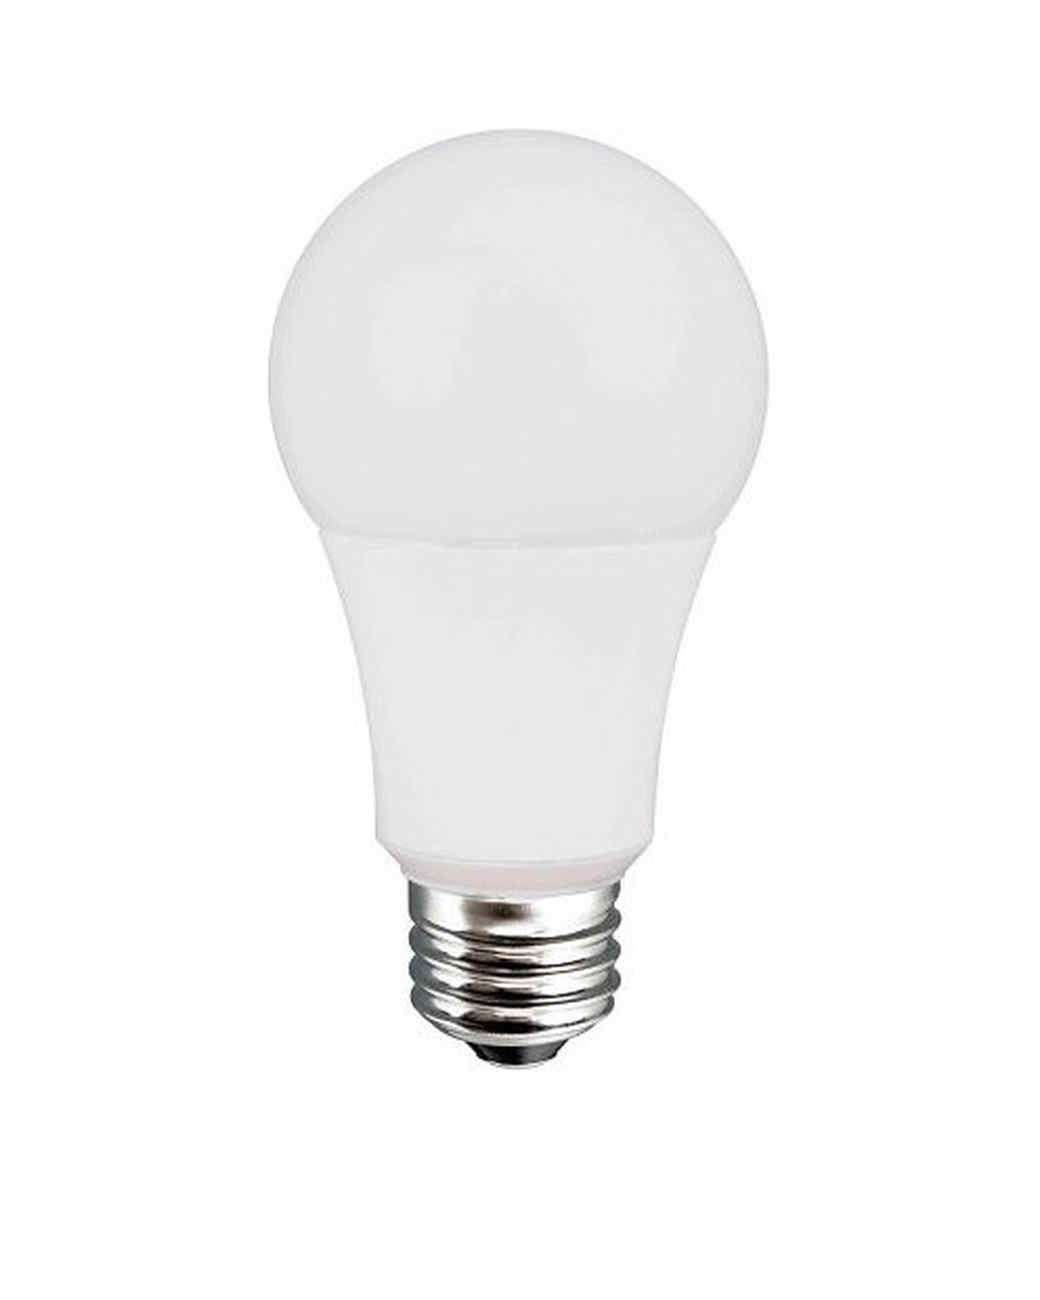 walmart 60W Great Value LED Light Bulb